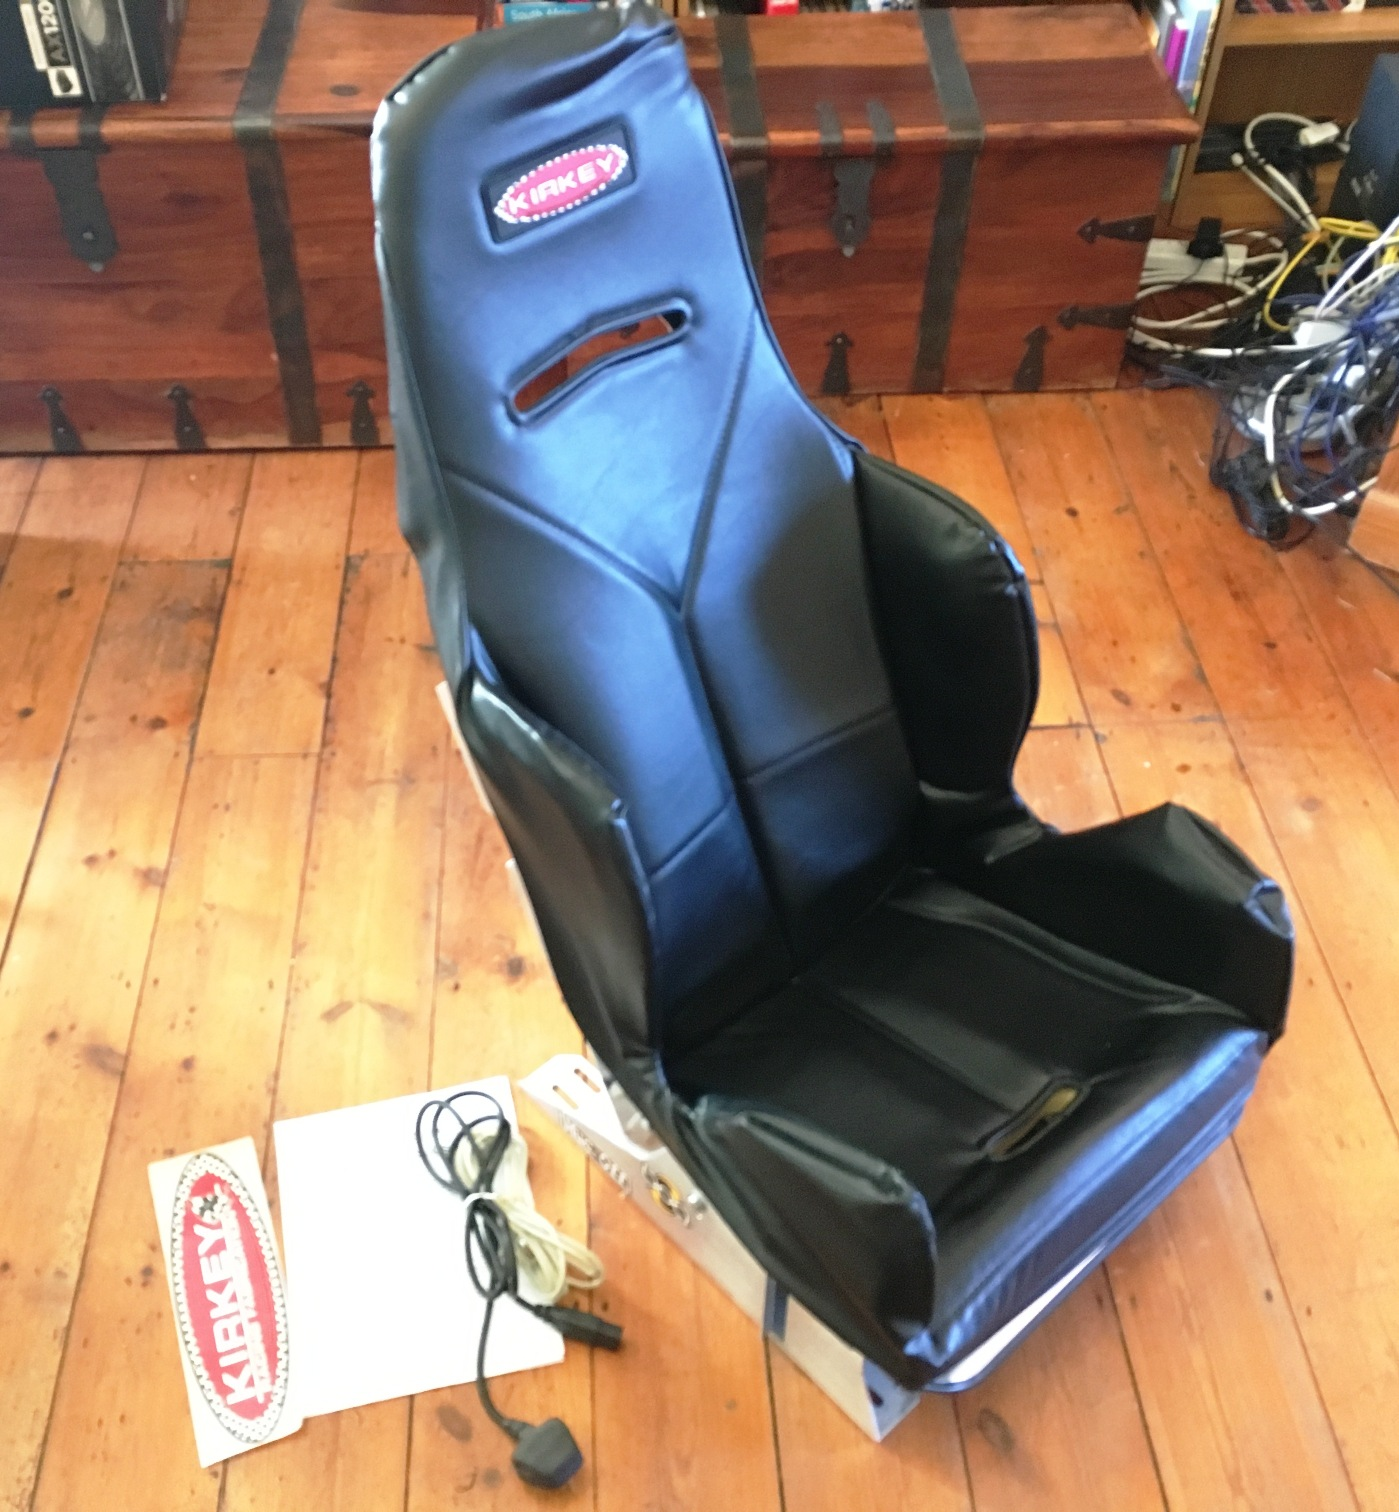 SOLD ) UK SimXperience GS-4 Motion Feedback G Seat ( SOLD